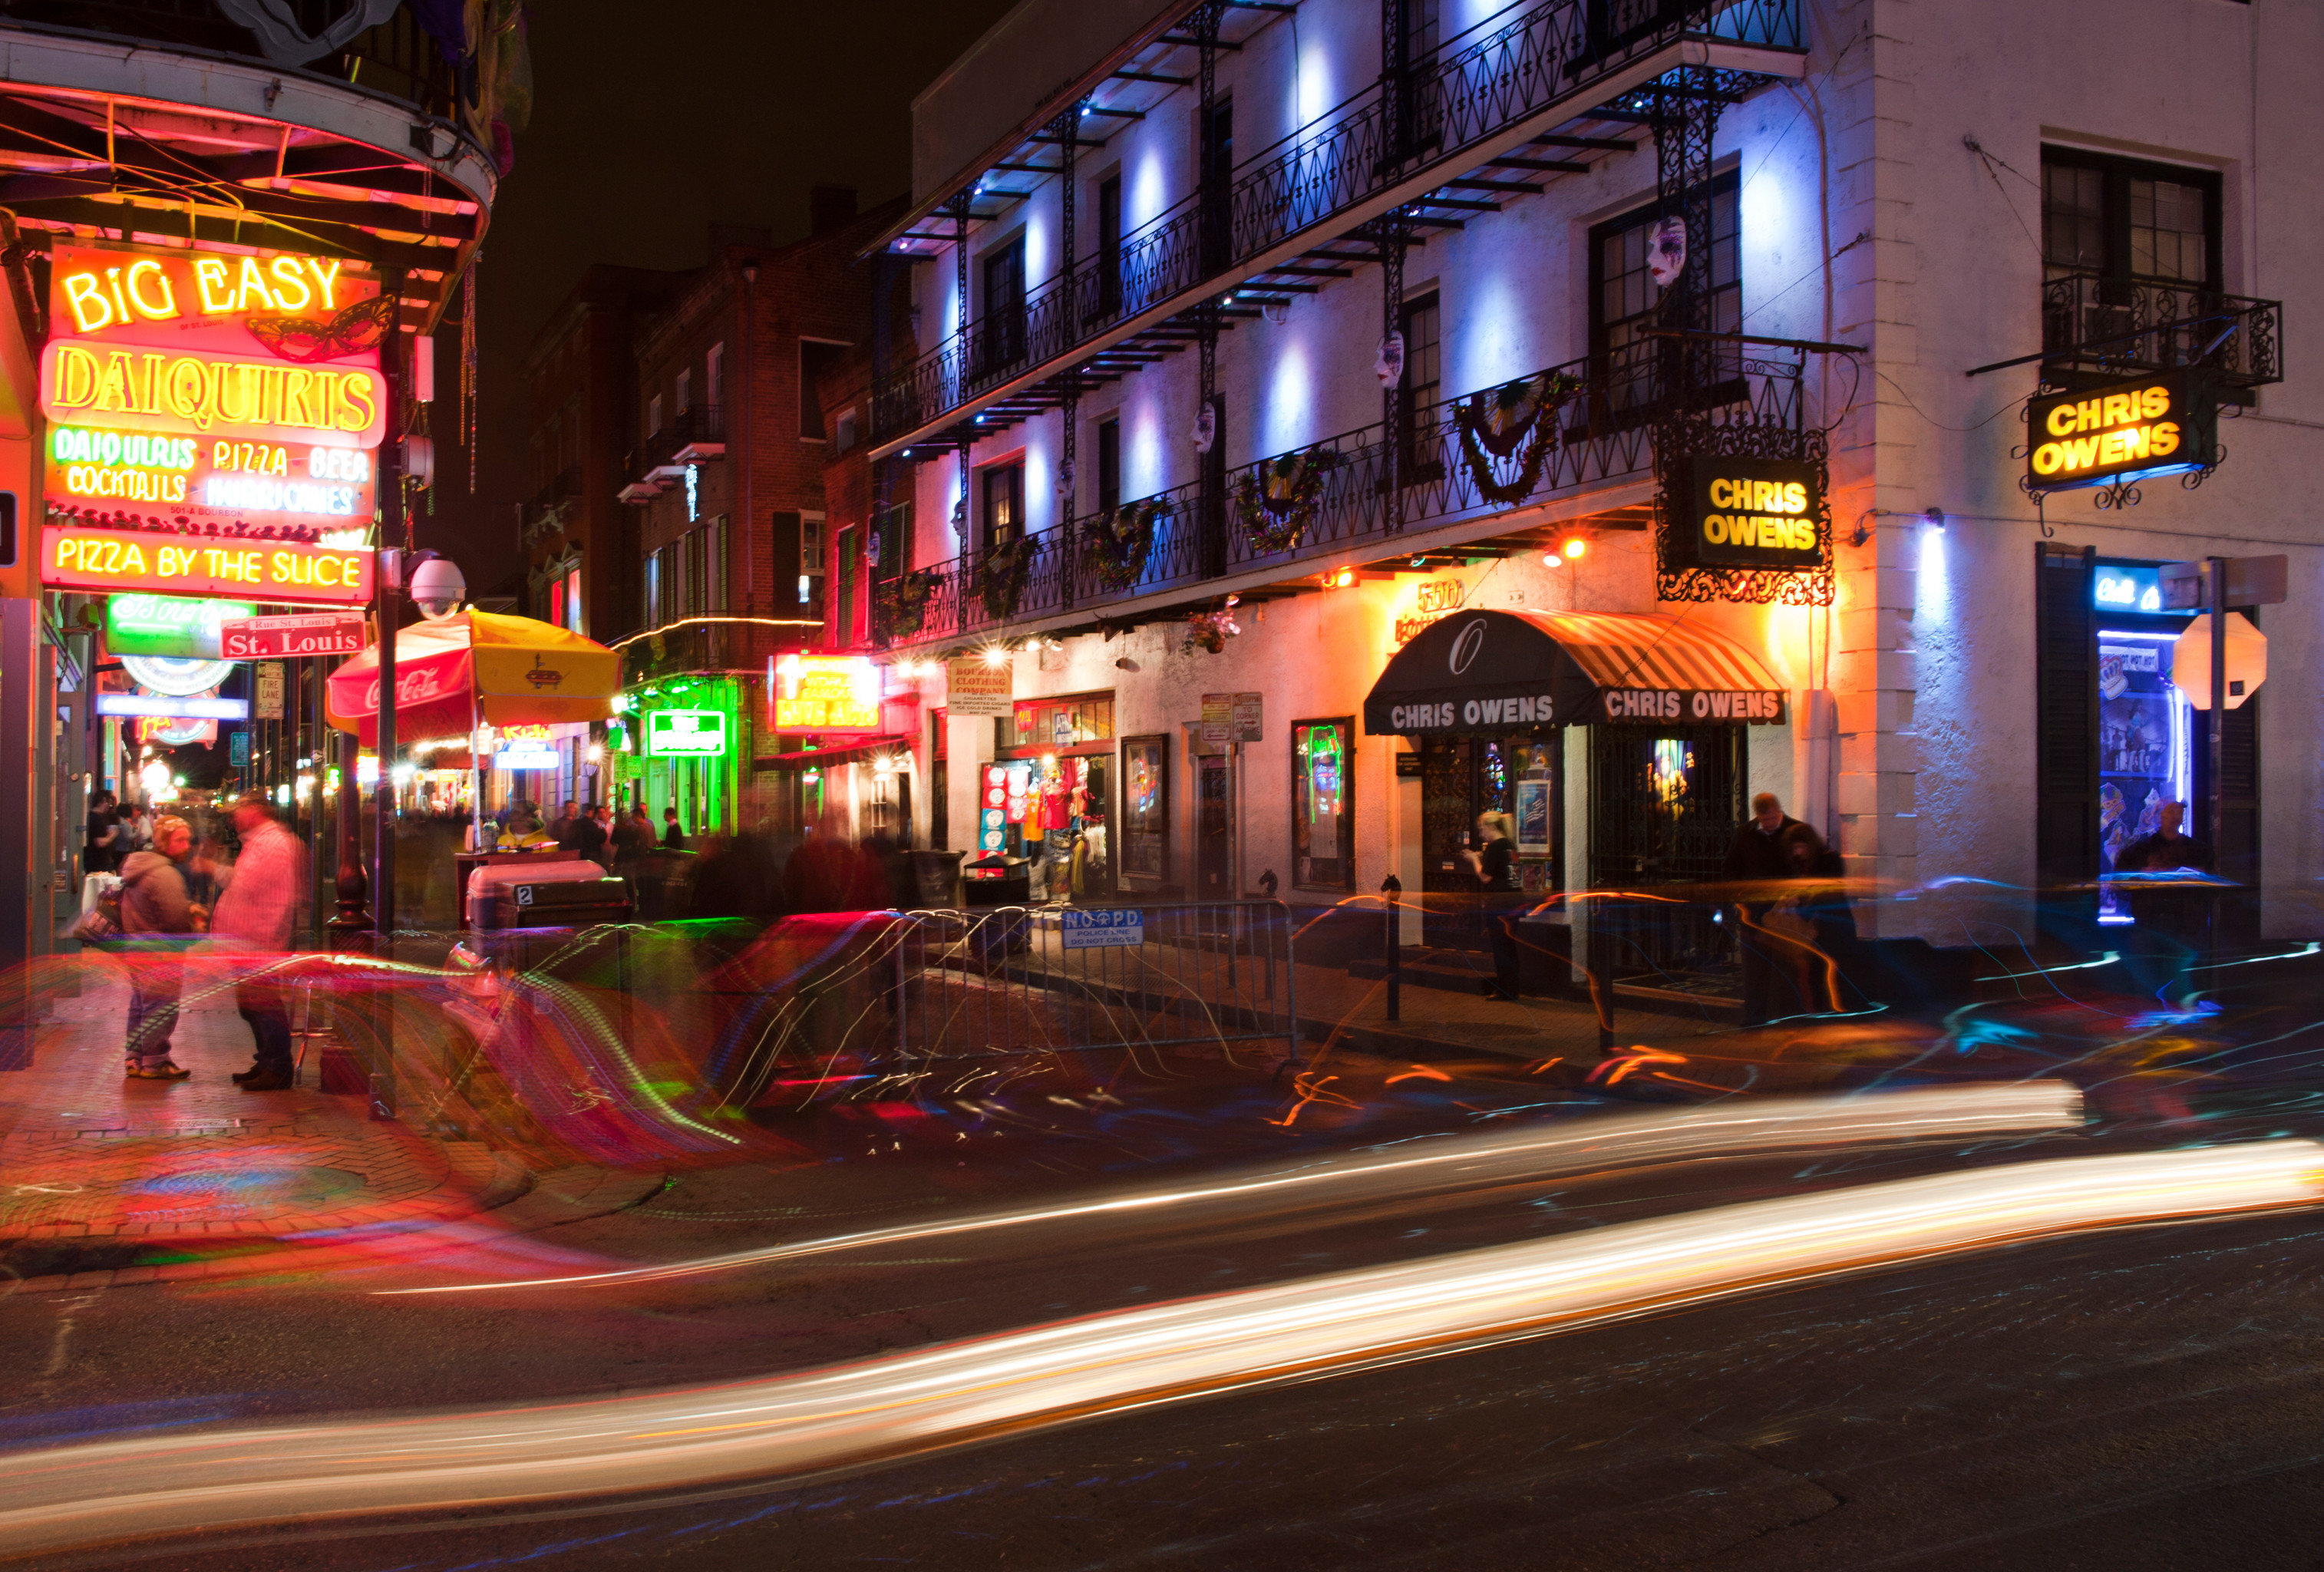 Architecture Buildings City Drink Eat Entertainment Landmarks Monuments Nightlife Scenic views Shop Town color road night street evening Downtown Bar restaurant cityscape